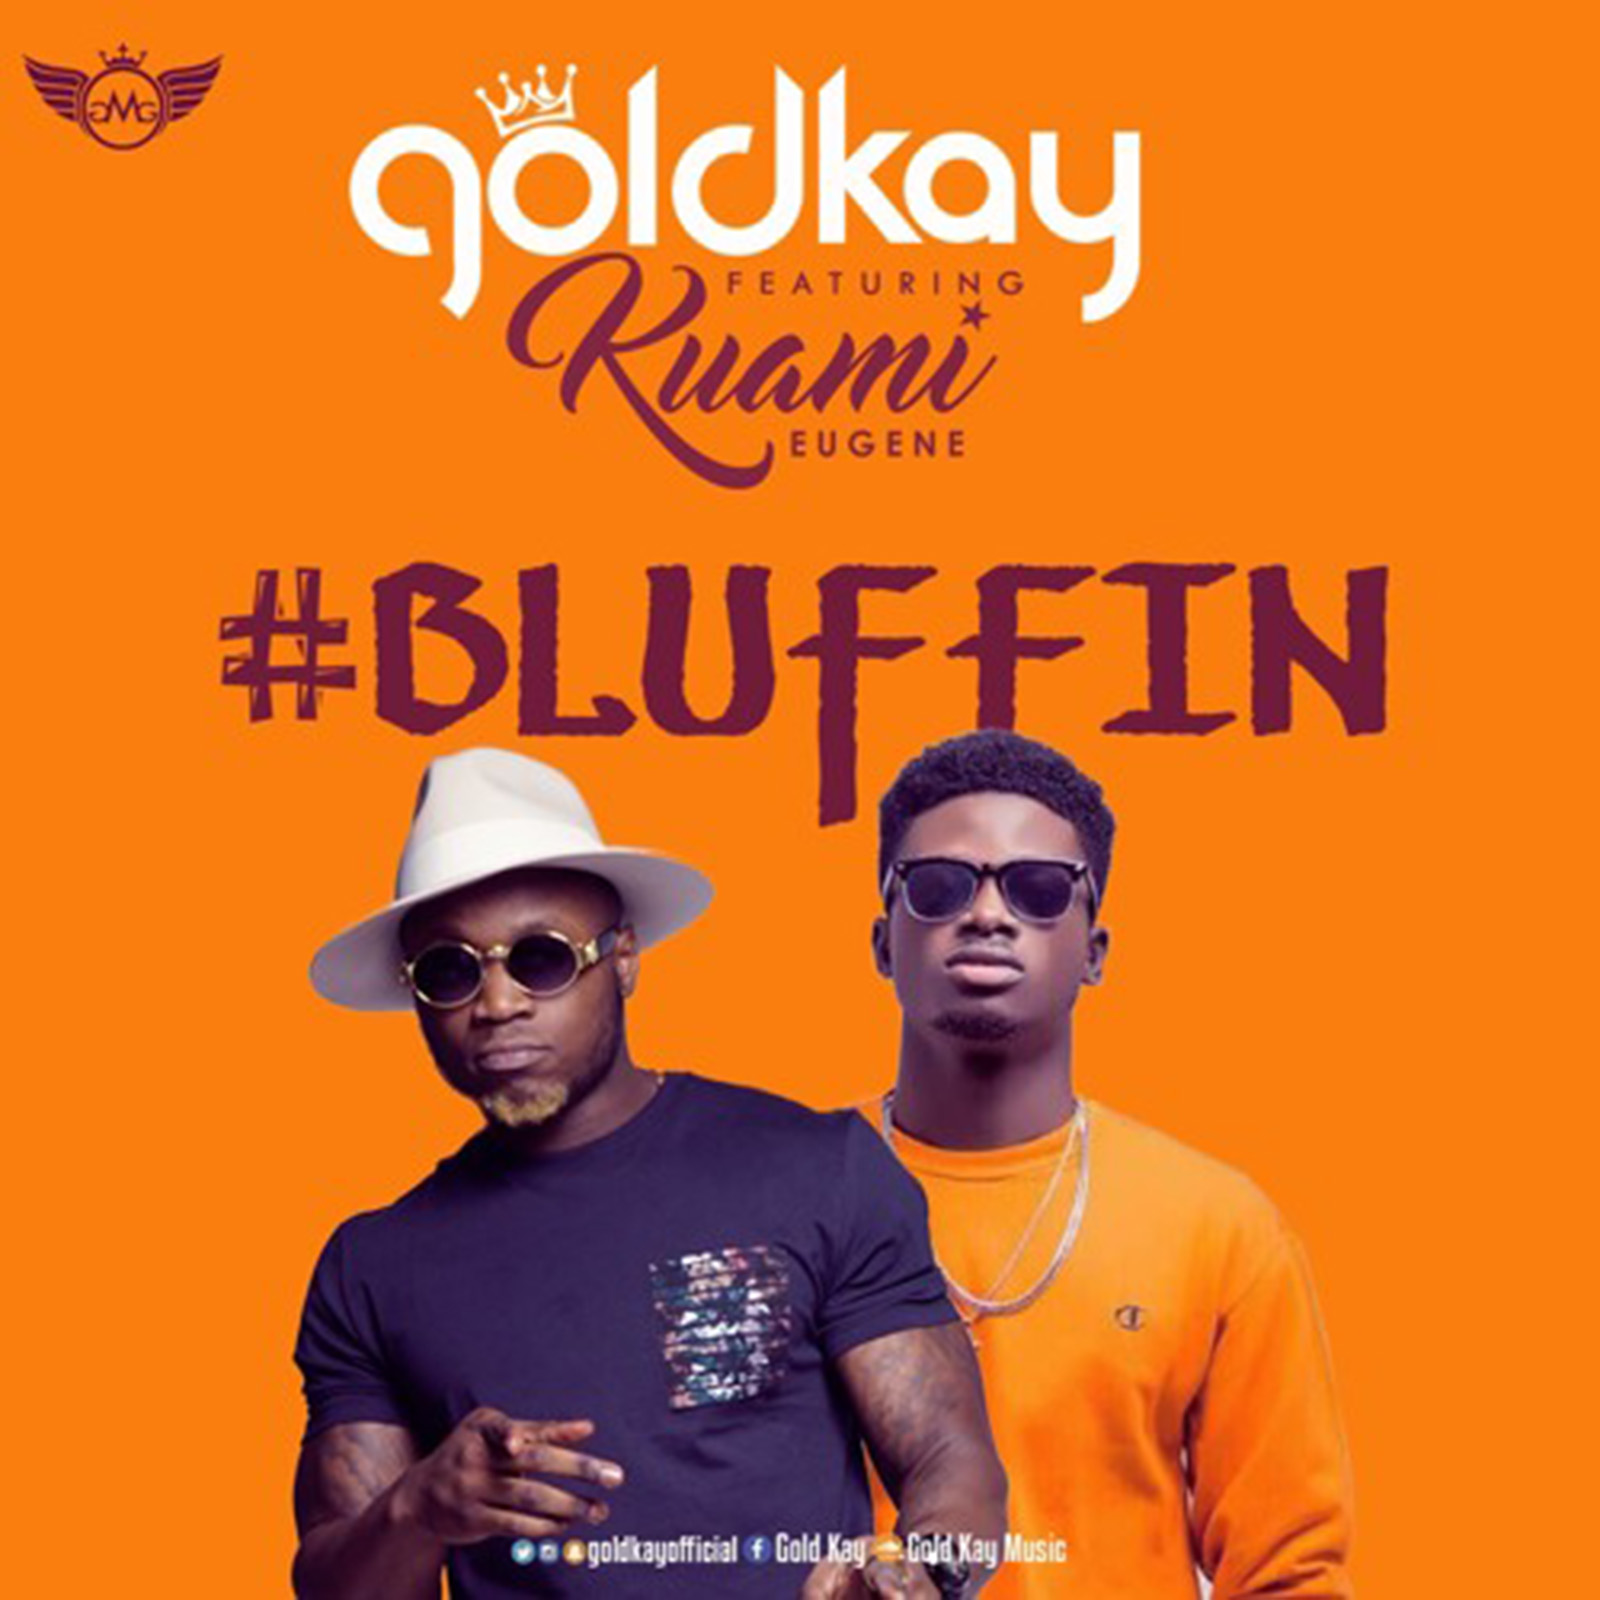 Bluffin by GoldKay feat. Kuami Eugene